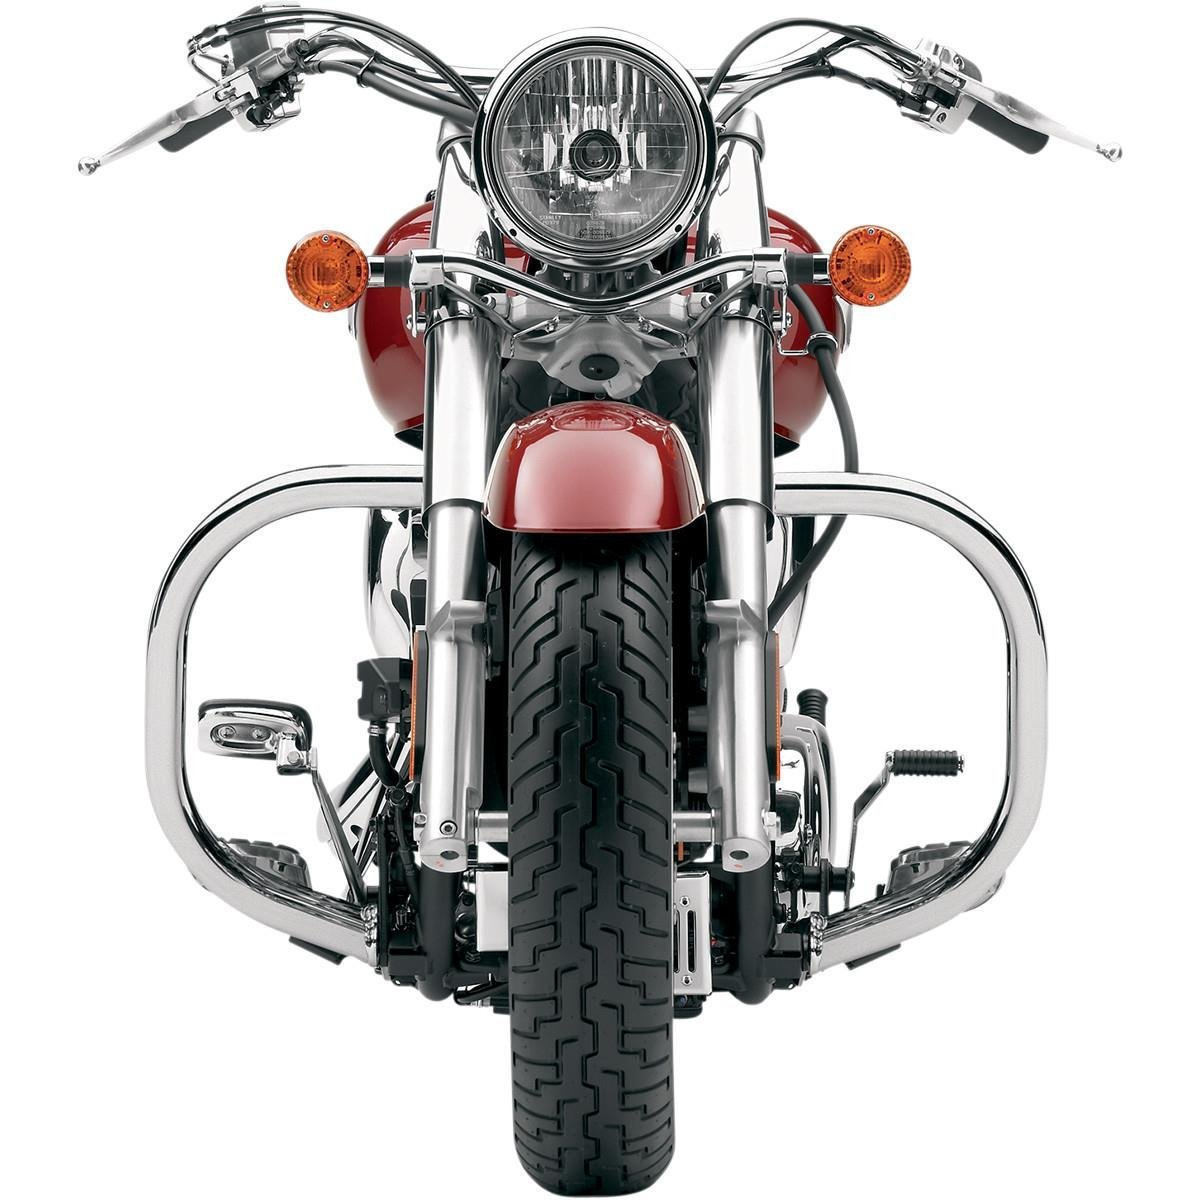 Get it delivered to your door - COBRA FATTY FREEWAY BARS For Honda Shadow VT 1300 - 2011-2013 - #01-2133 - 5050 (EGP)